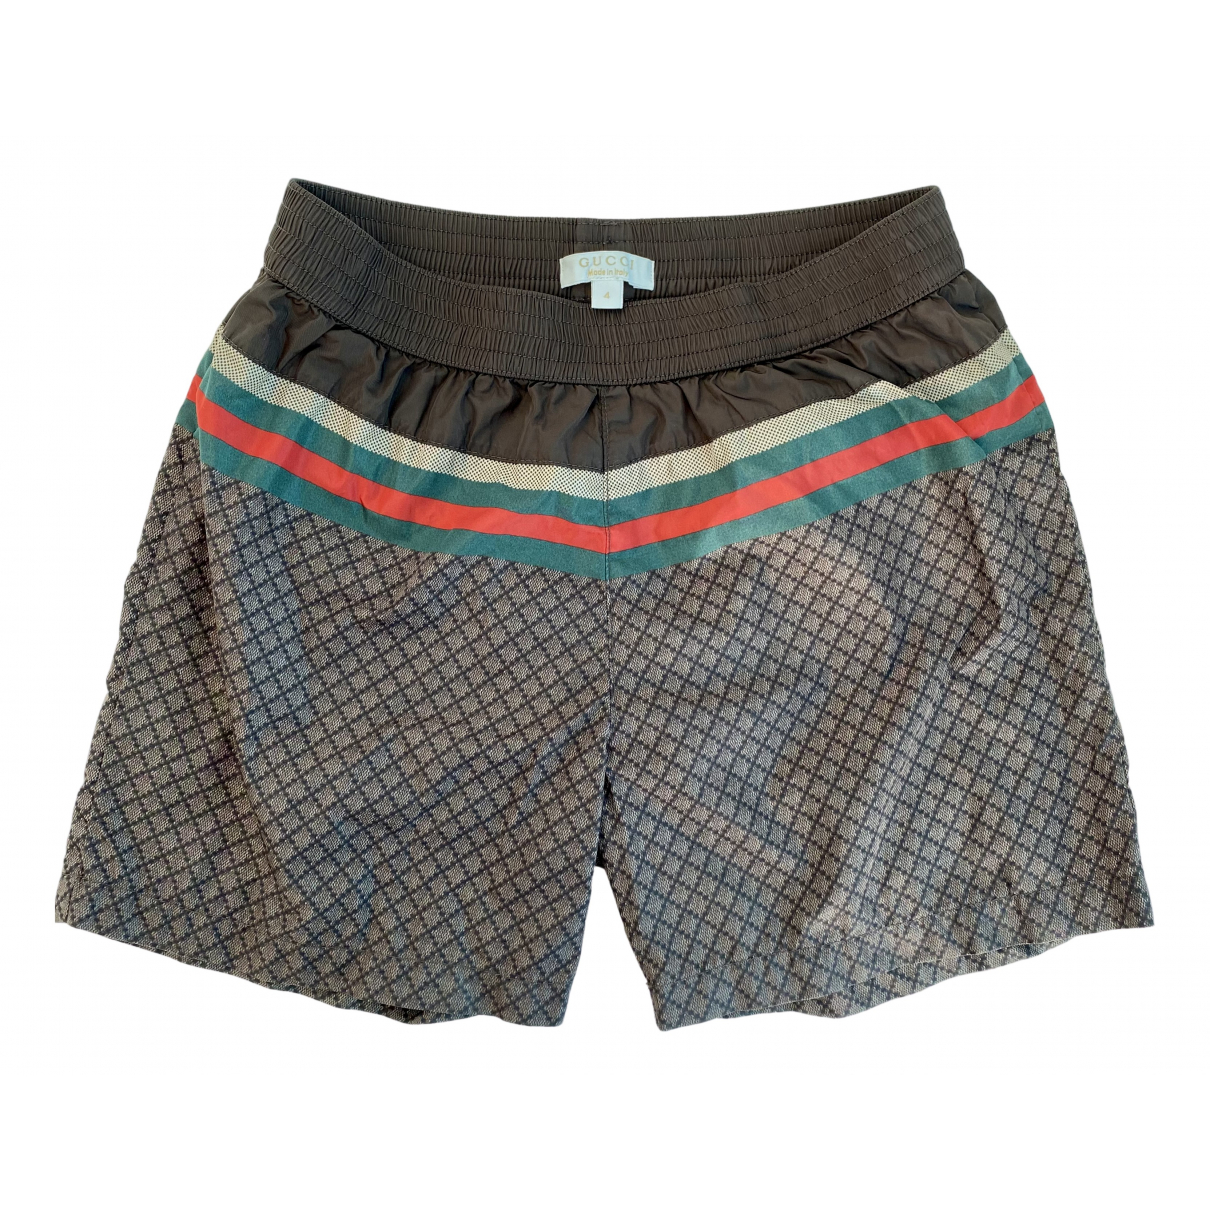 Gucci N Brown Cloth Shorts for Kids 4 years - up to 102cm FR